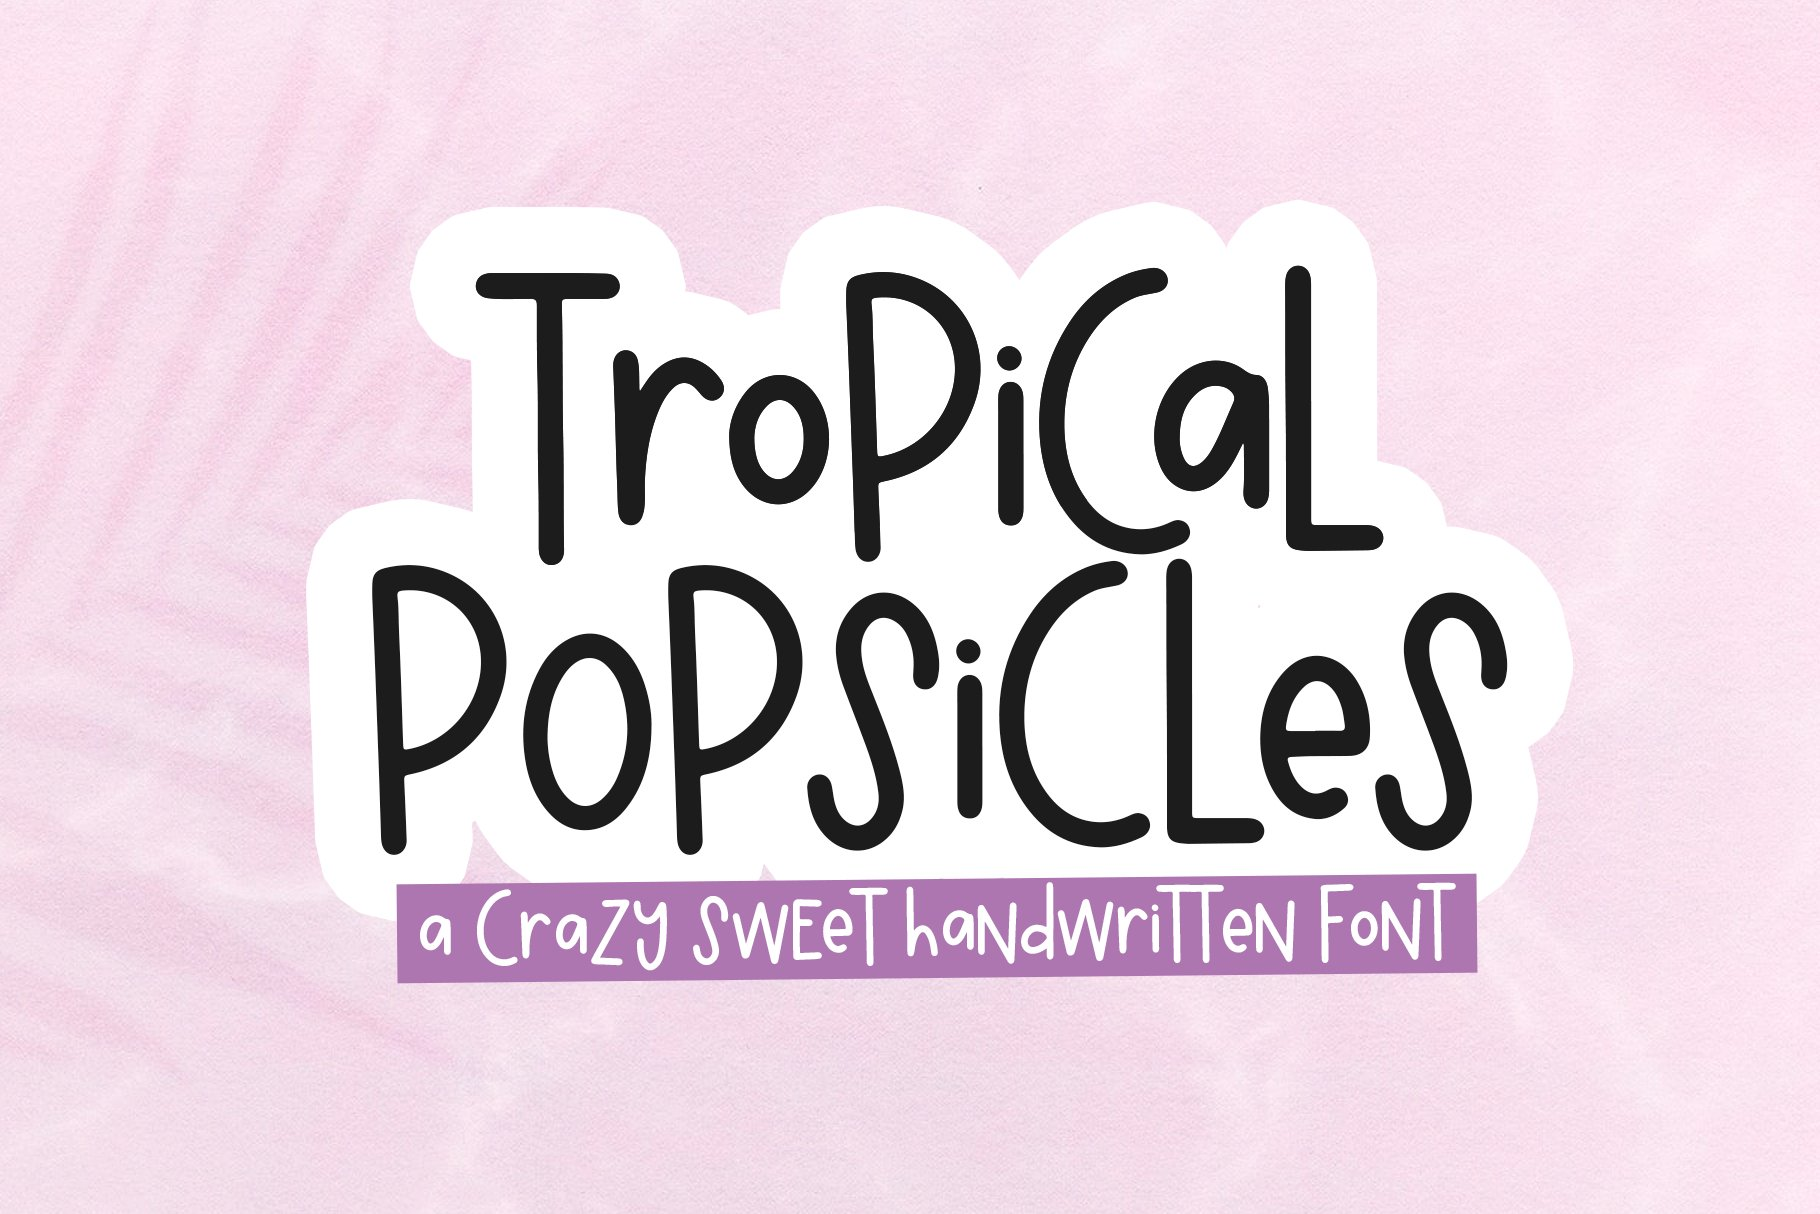 Tropical Popsicles - A Quirky Handwritten Font example image 1